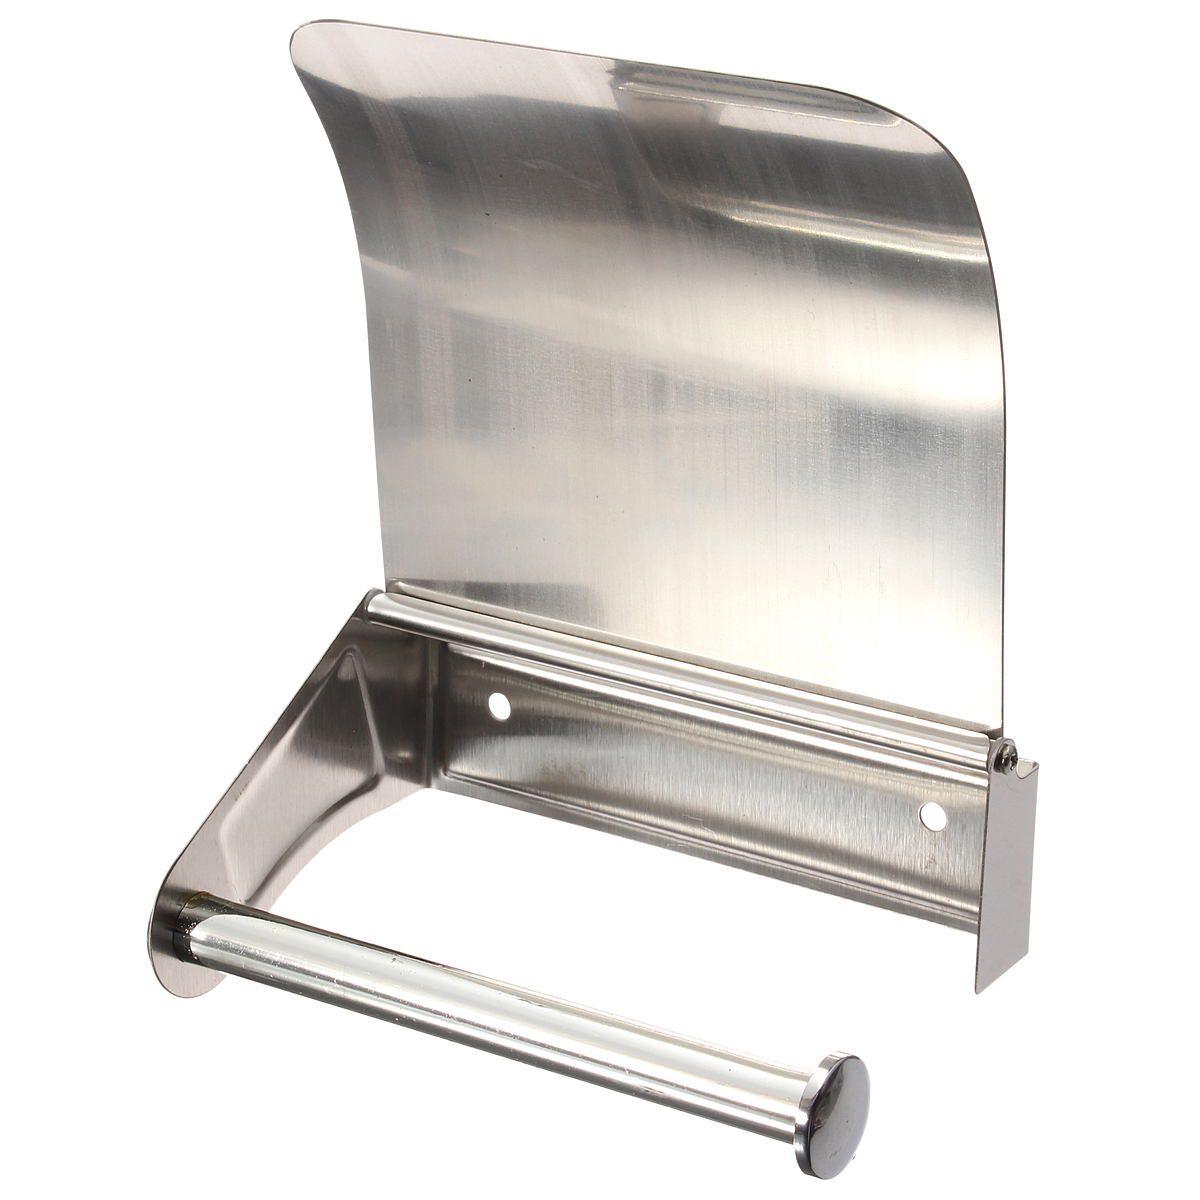 Stainless Steel Toilet Paper Stand Stainless Steel Toilet Paper Roll Holder Tissue Bathroom